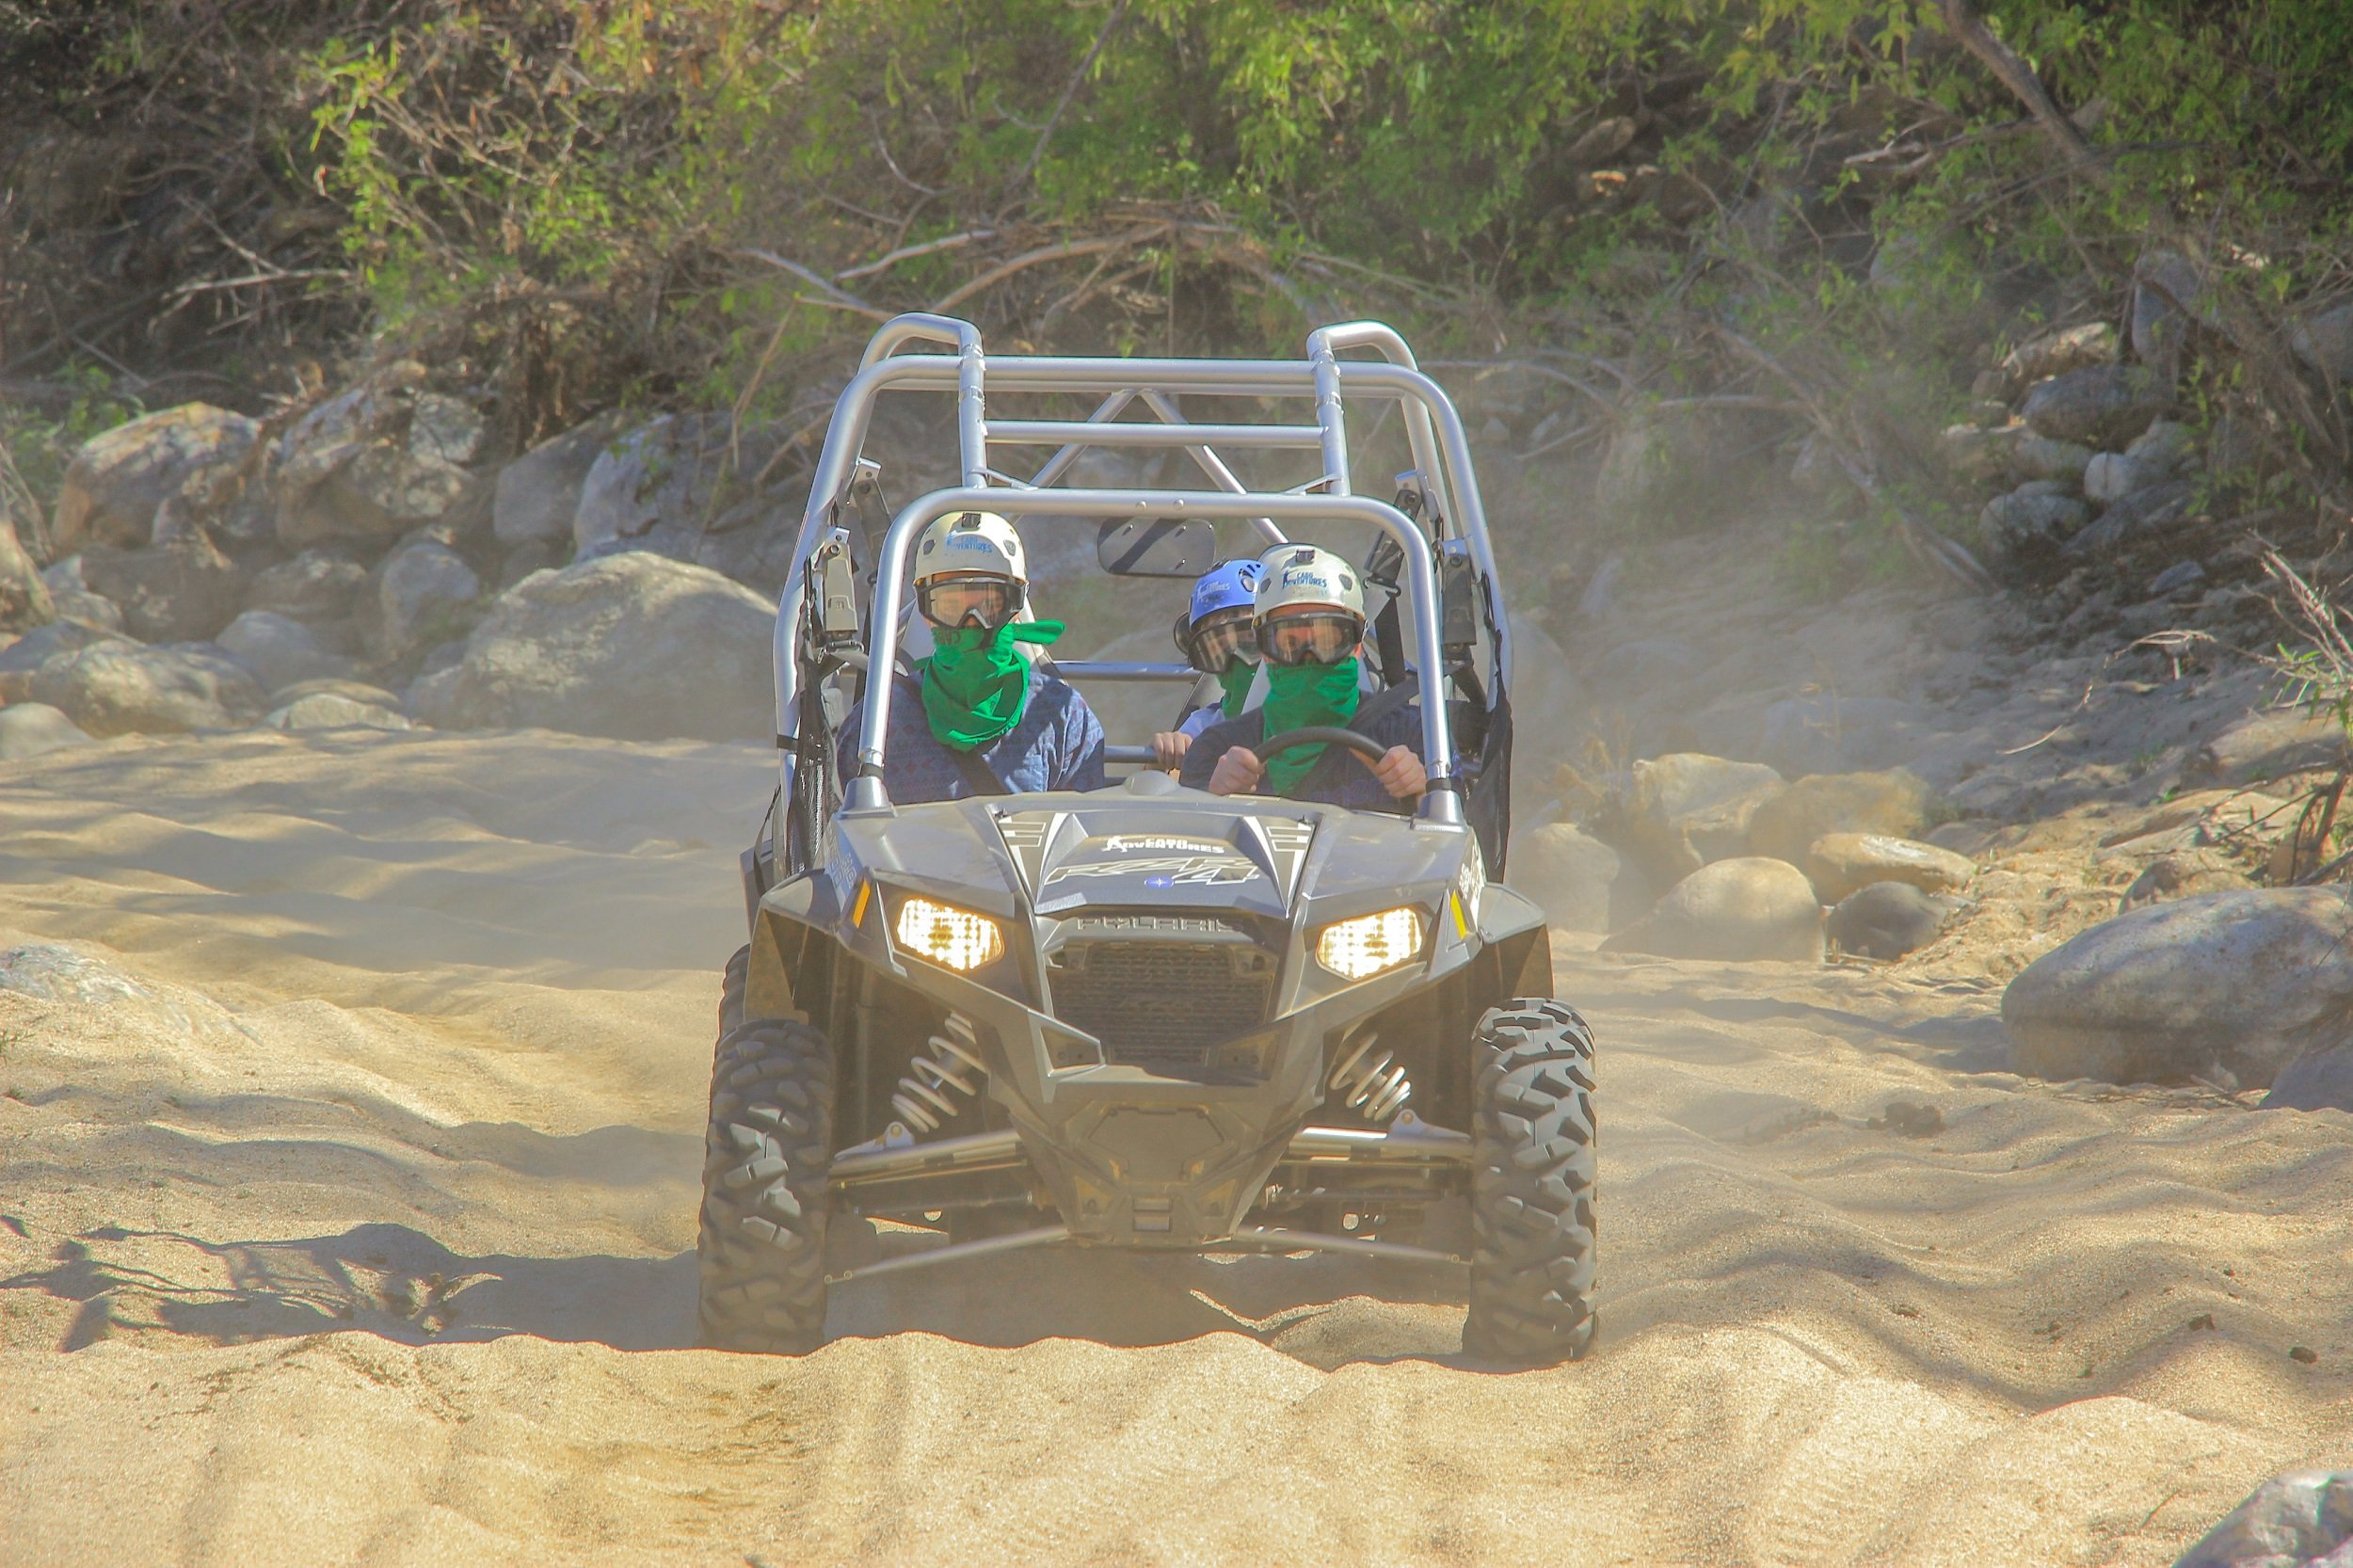 Canopy & Off-road Adventure Tour - 8 Day Los Cabos Adventure Tour Package